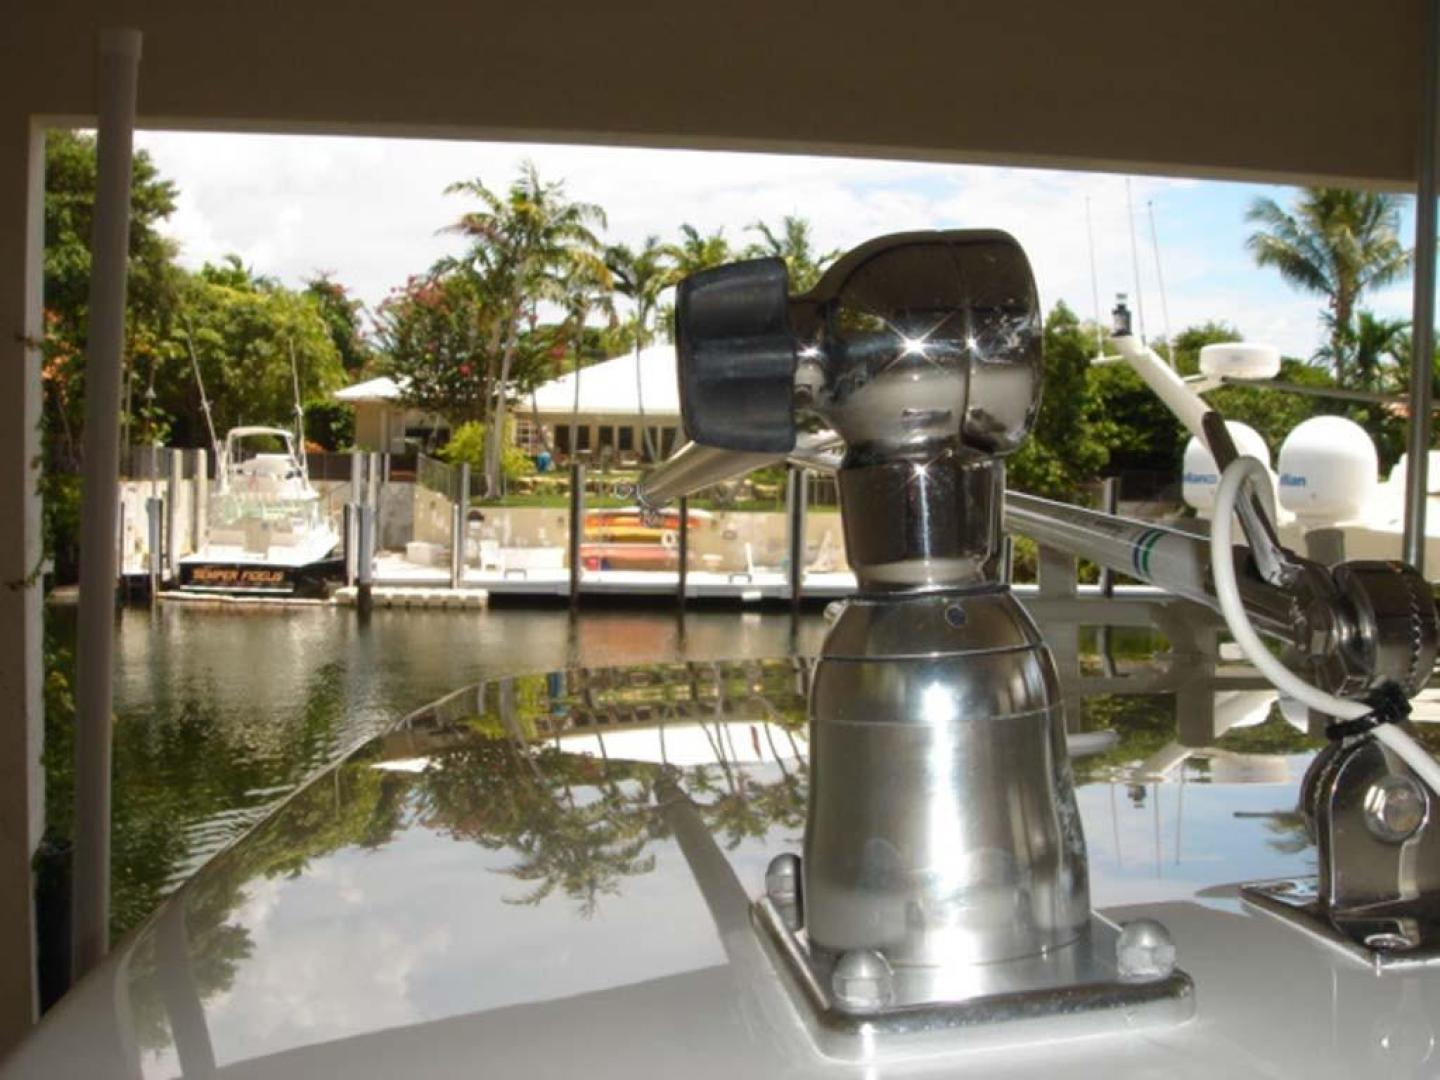 Intrepid-327 Center Console 2014-Deep Ship Palm Beach Gardens-Florida-United States-924019 | Thumbnail